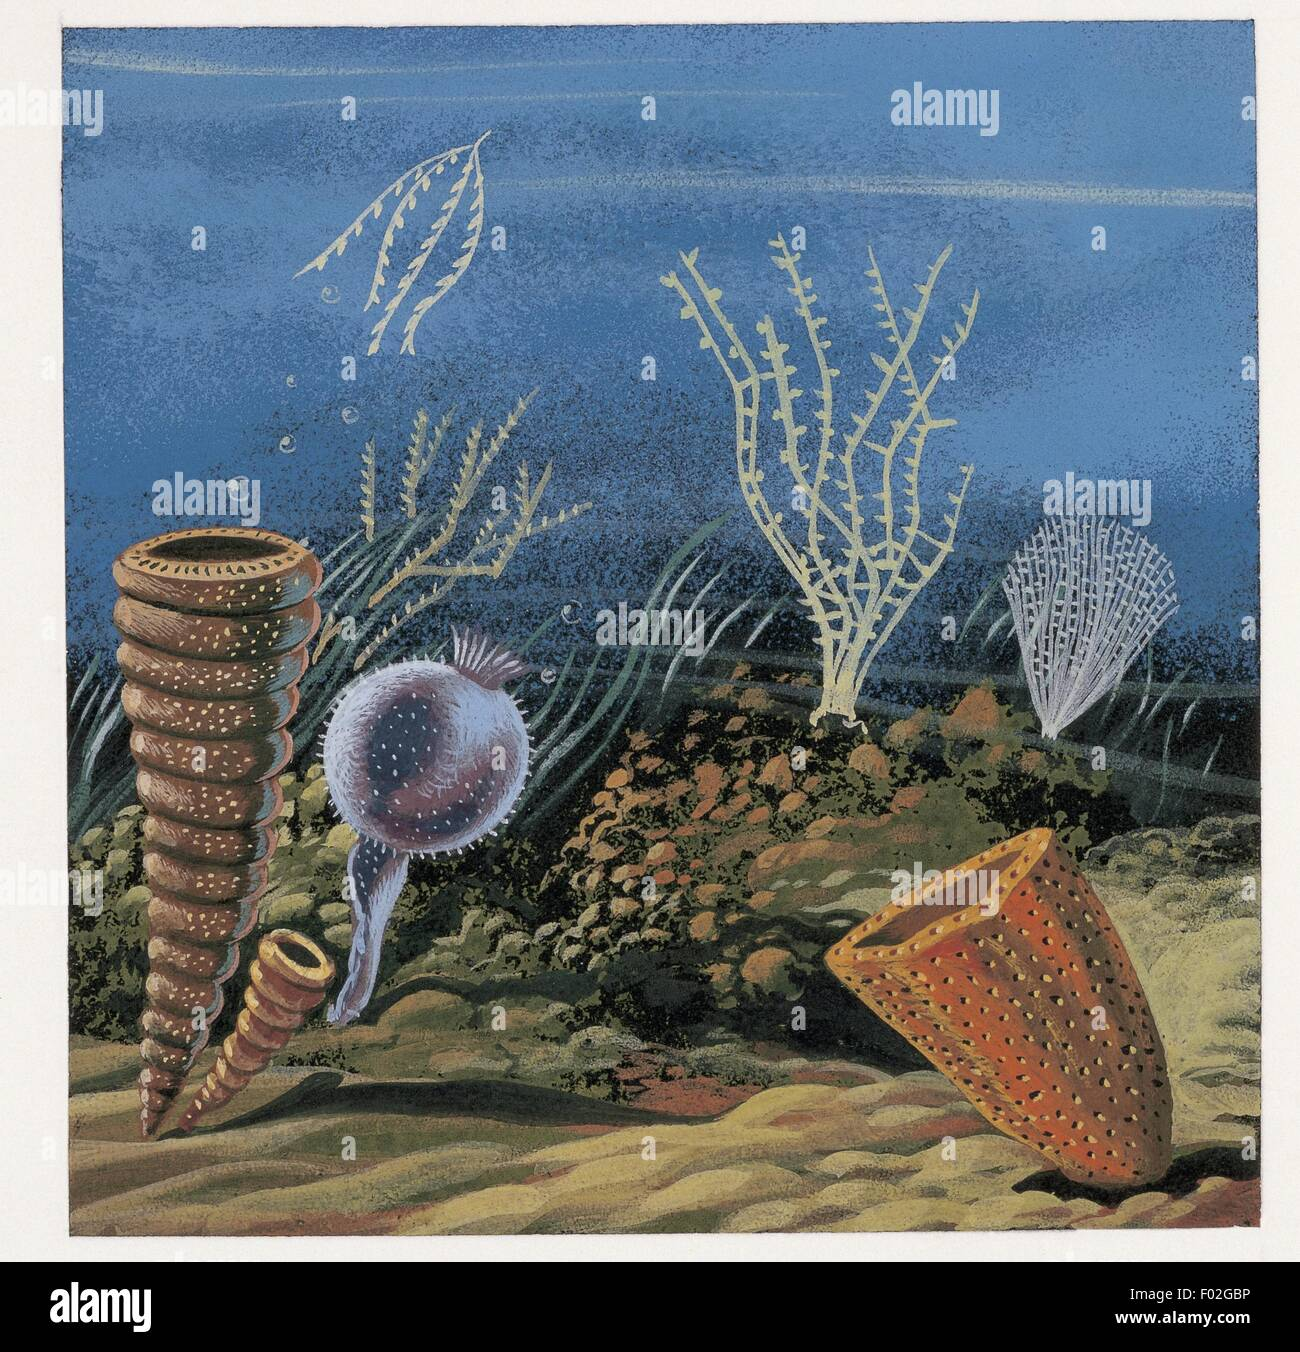 Zoology: Fossils - Graptolites and Cambrian sponges. Art work - Stock Image